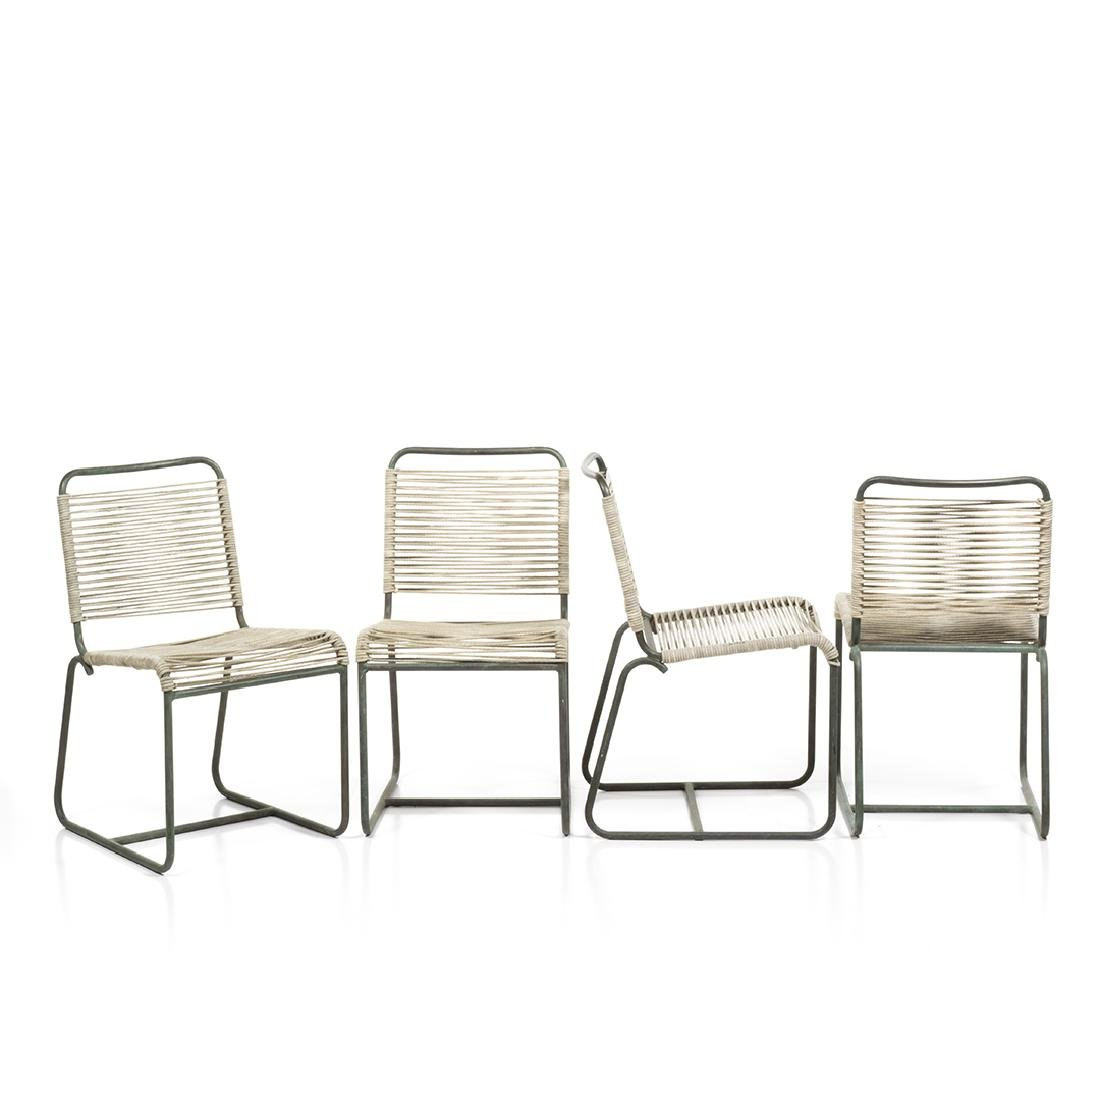 Walter Lamb Dining Chairs (4) - 2